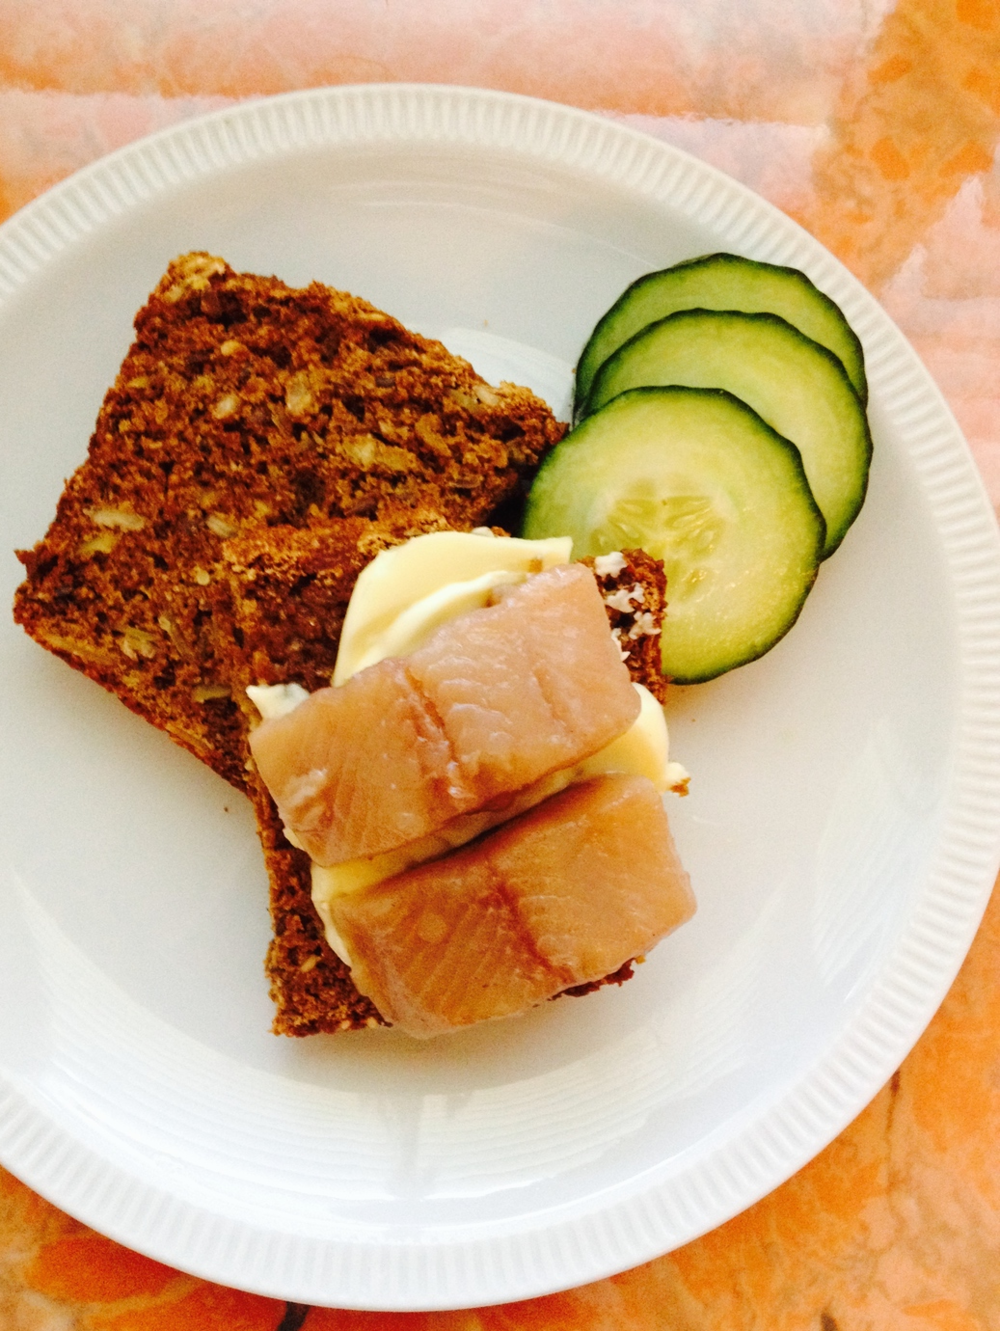 Open-faced sandwich with Danish butter, pickled herring, and cucumber.